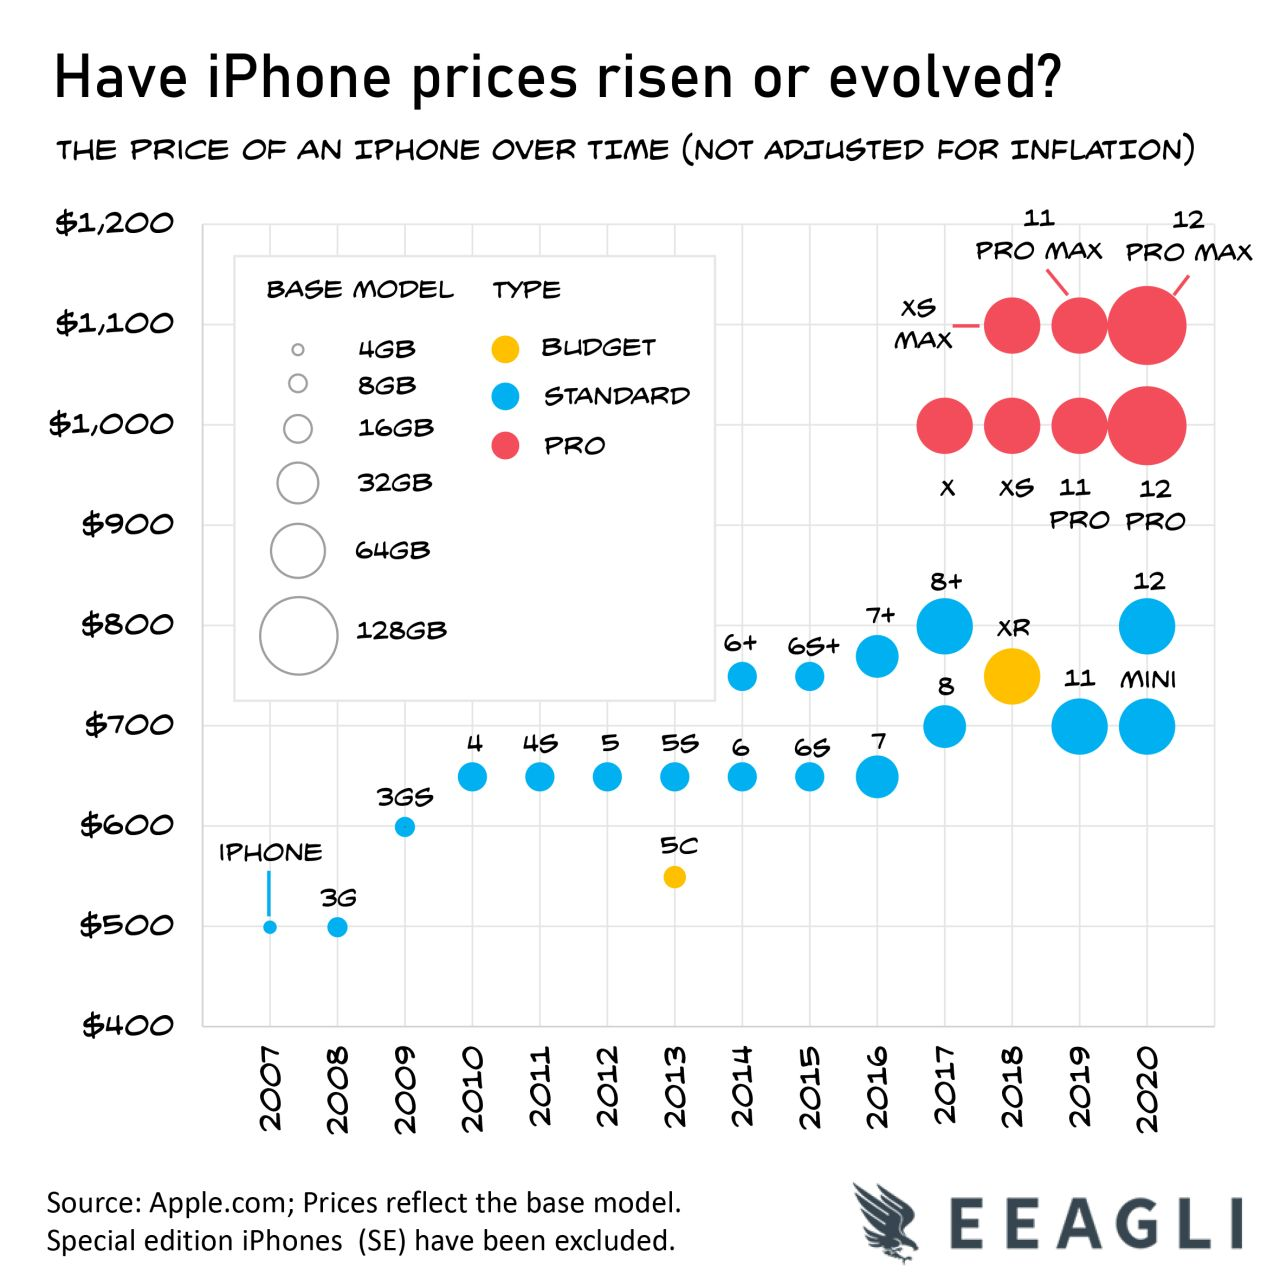 The price of an iPhone over time (not adjusted for inflation)